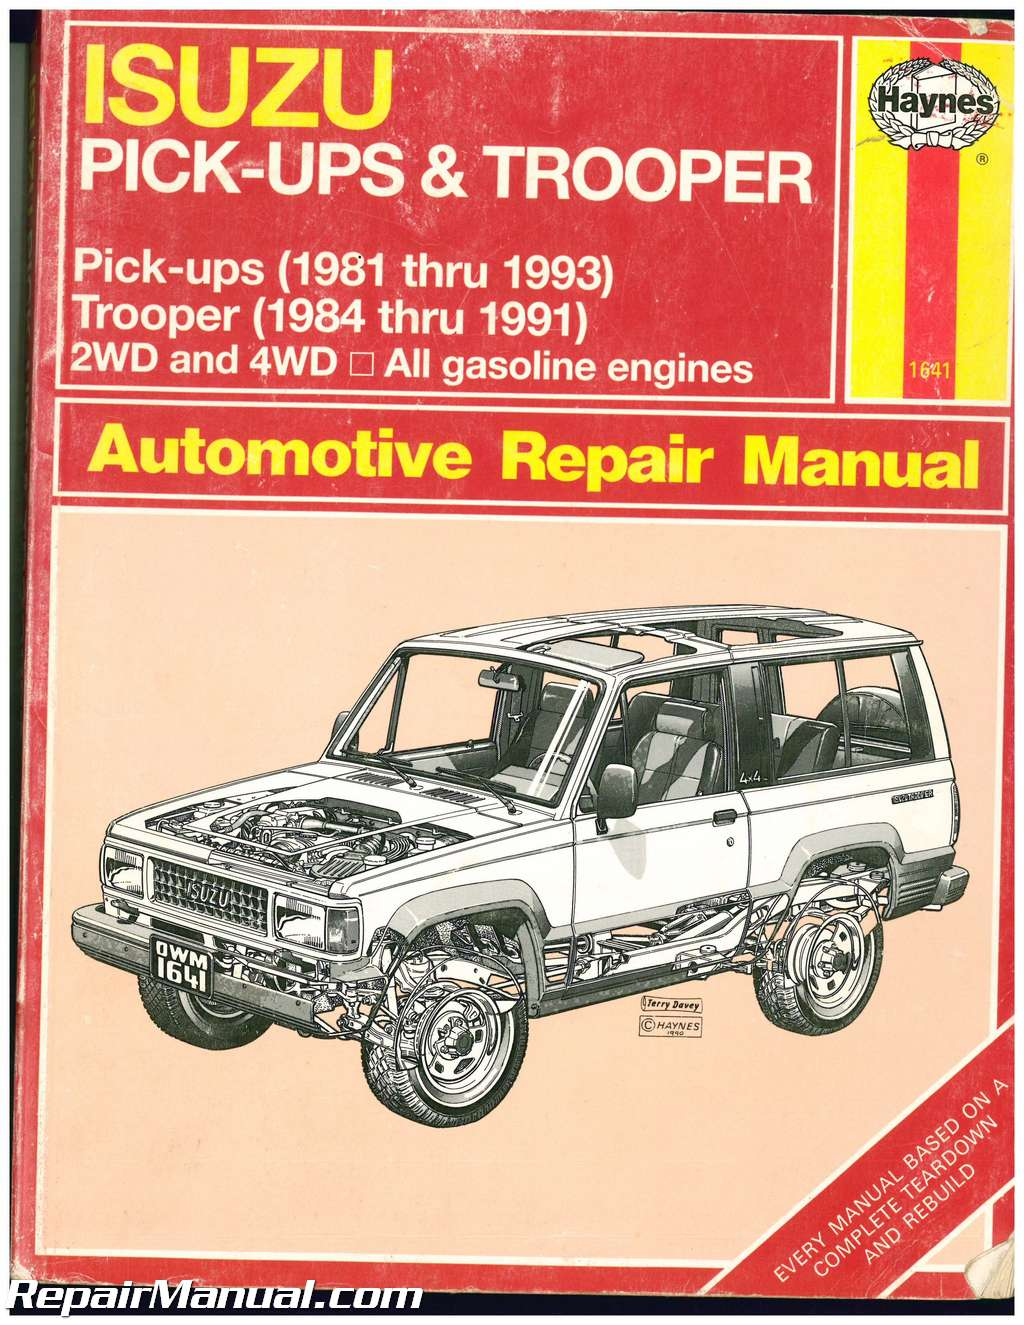 used haynes isuzu trooper pick ups 1981 1993 auto repair manual rh repairmanual com Isuzu Diesel Engine Parts Isuzu C240 Engine Parts